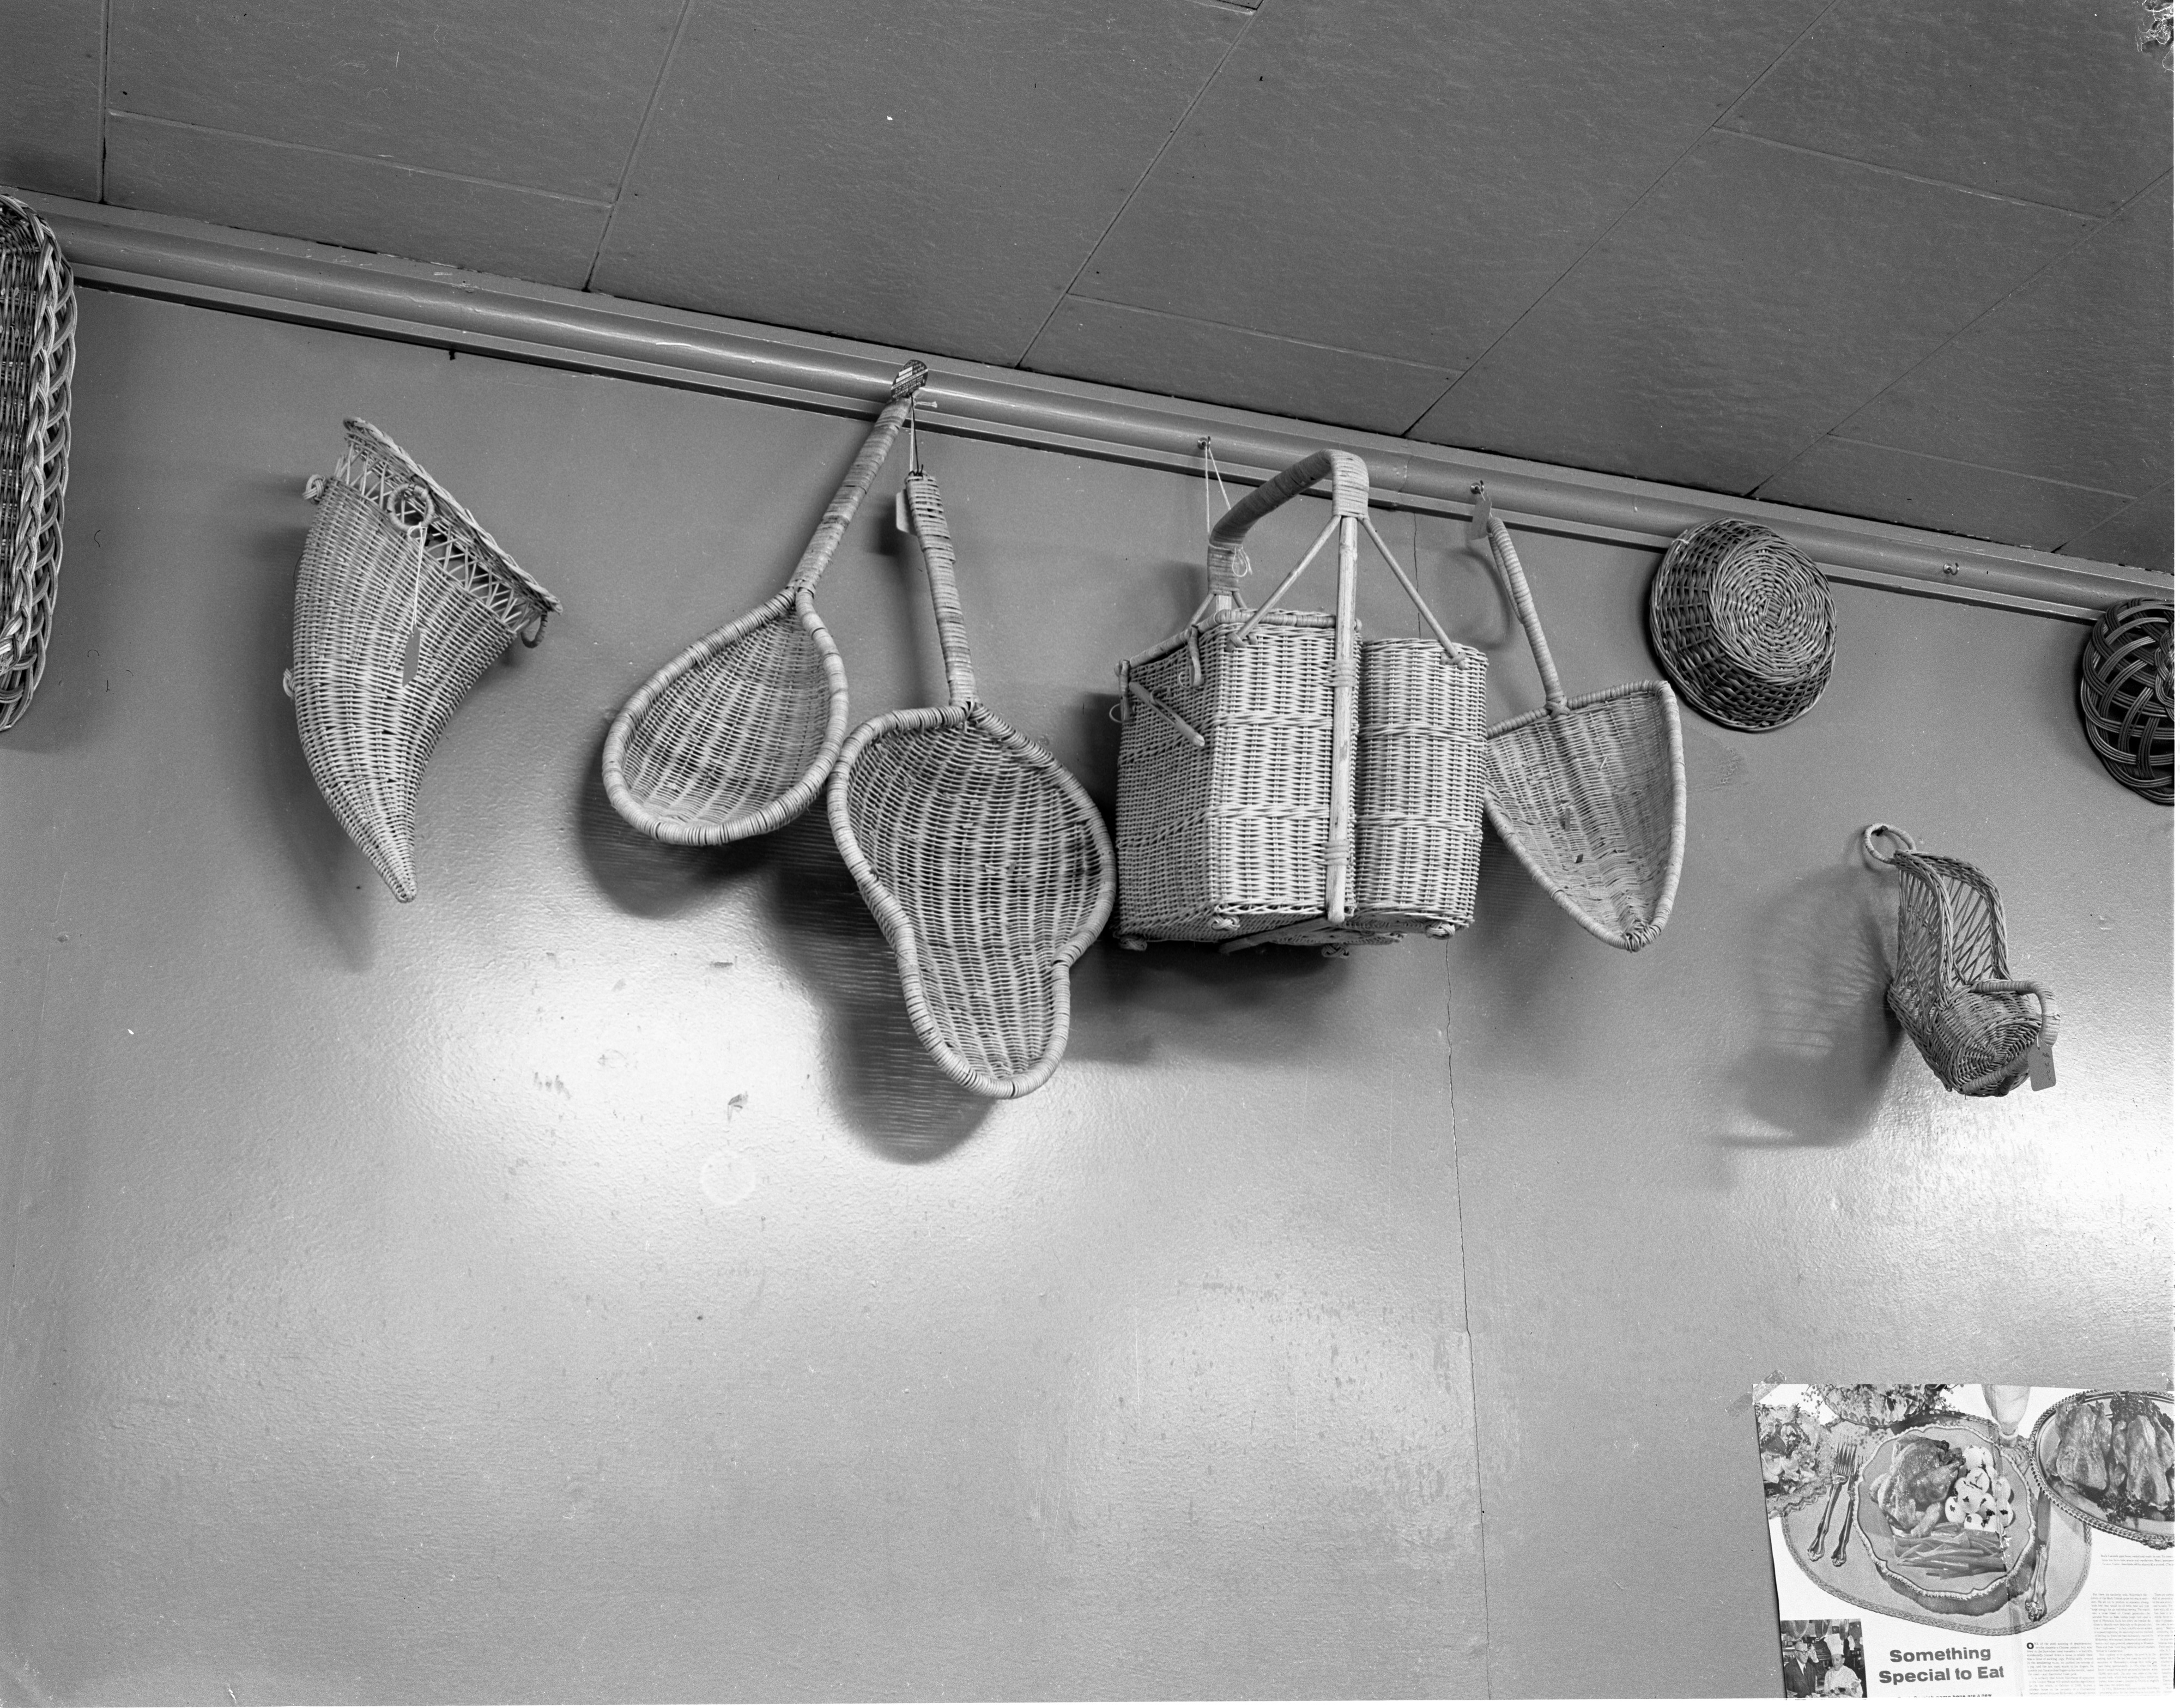 Basket Display At Big Ten Party Store, November 1955 image